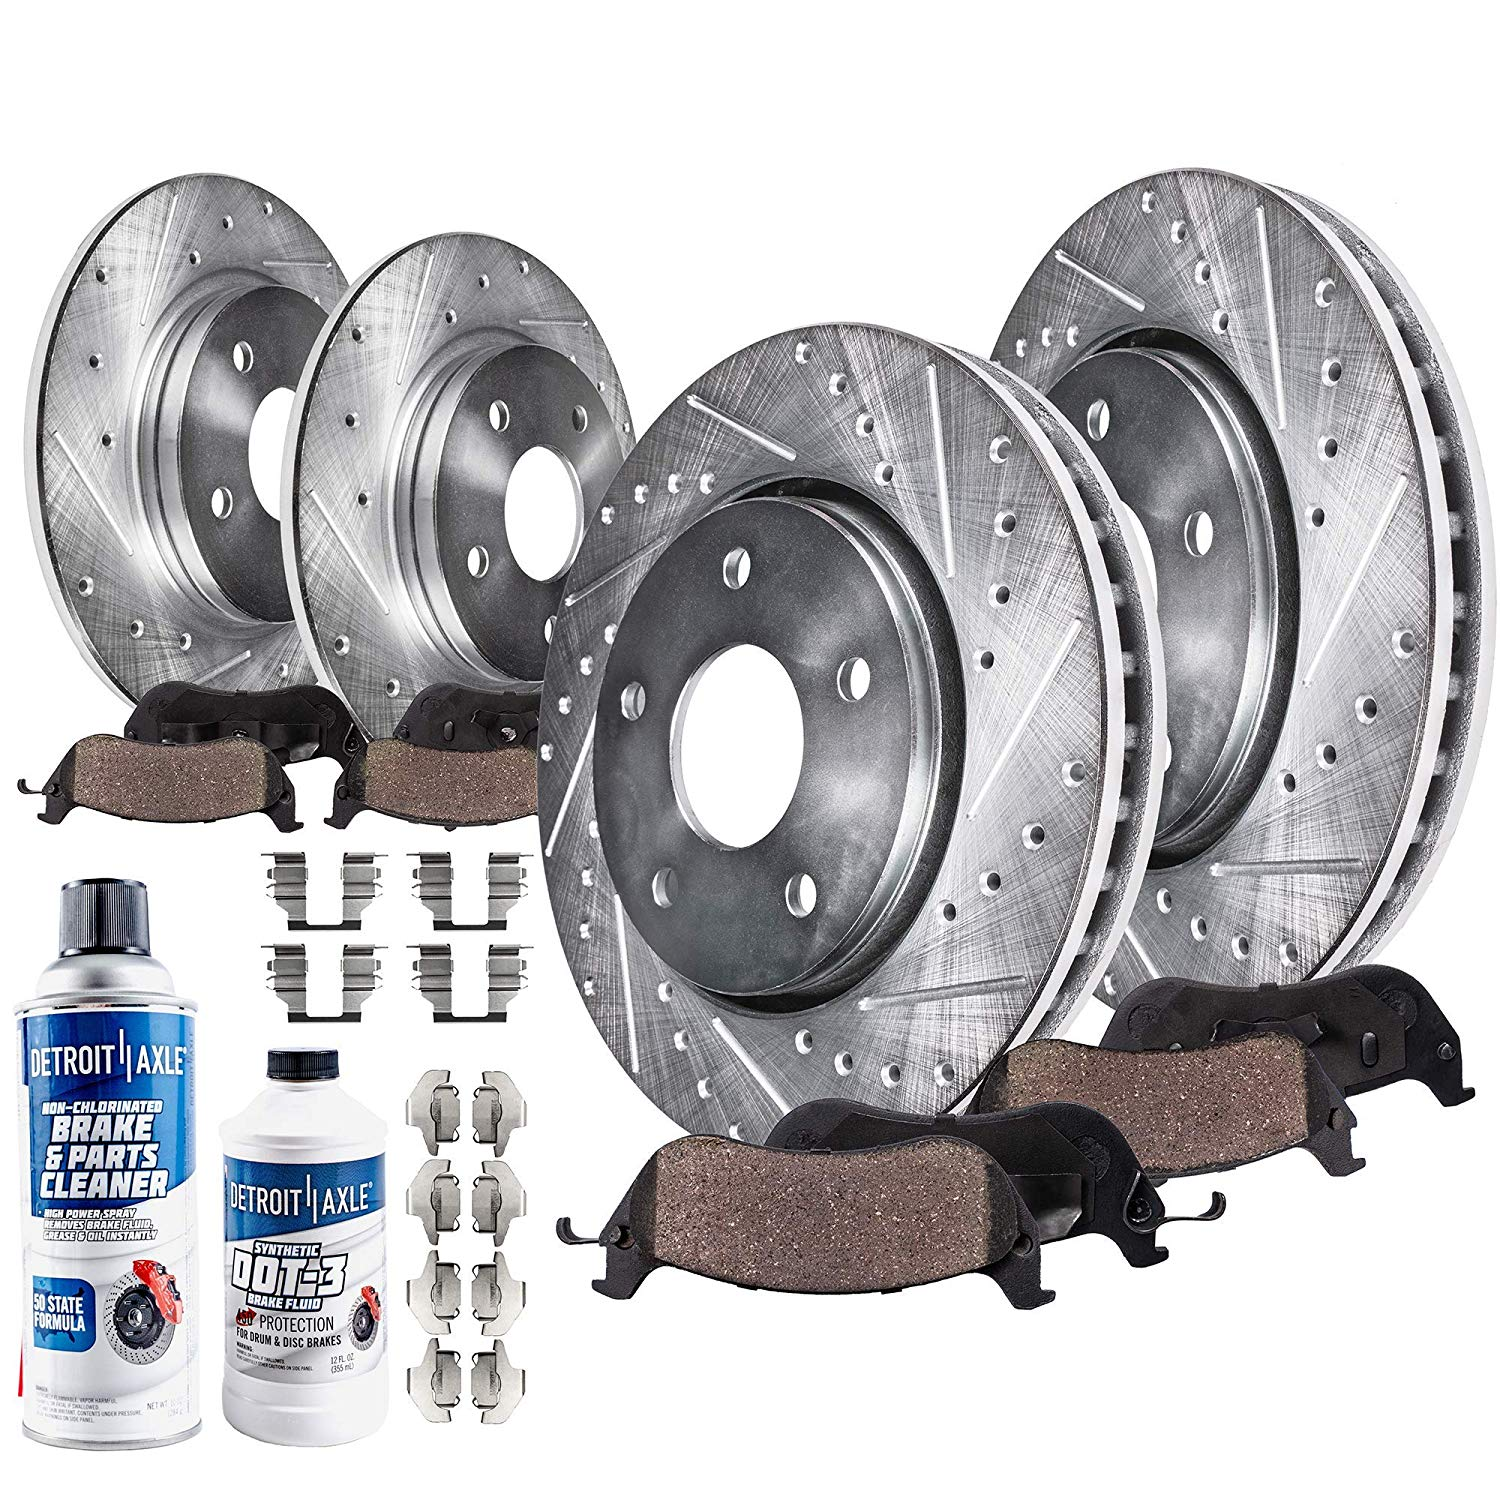 Front + Rear Rotors w//Ceramic Pads OE Brakes Fits 2010 Forester Impreza